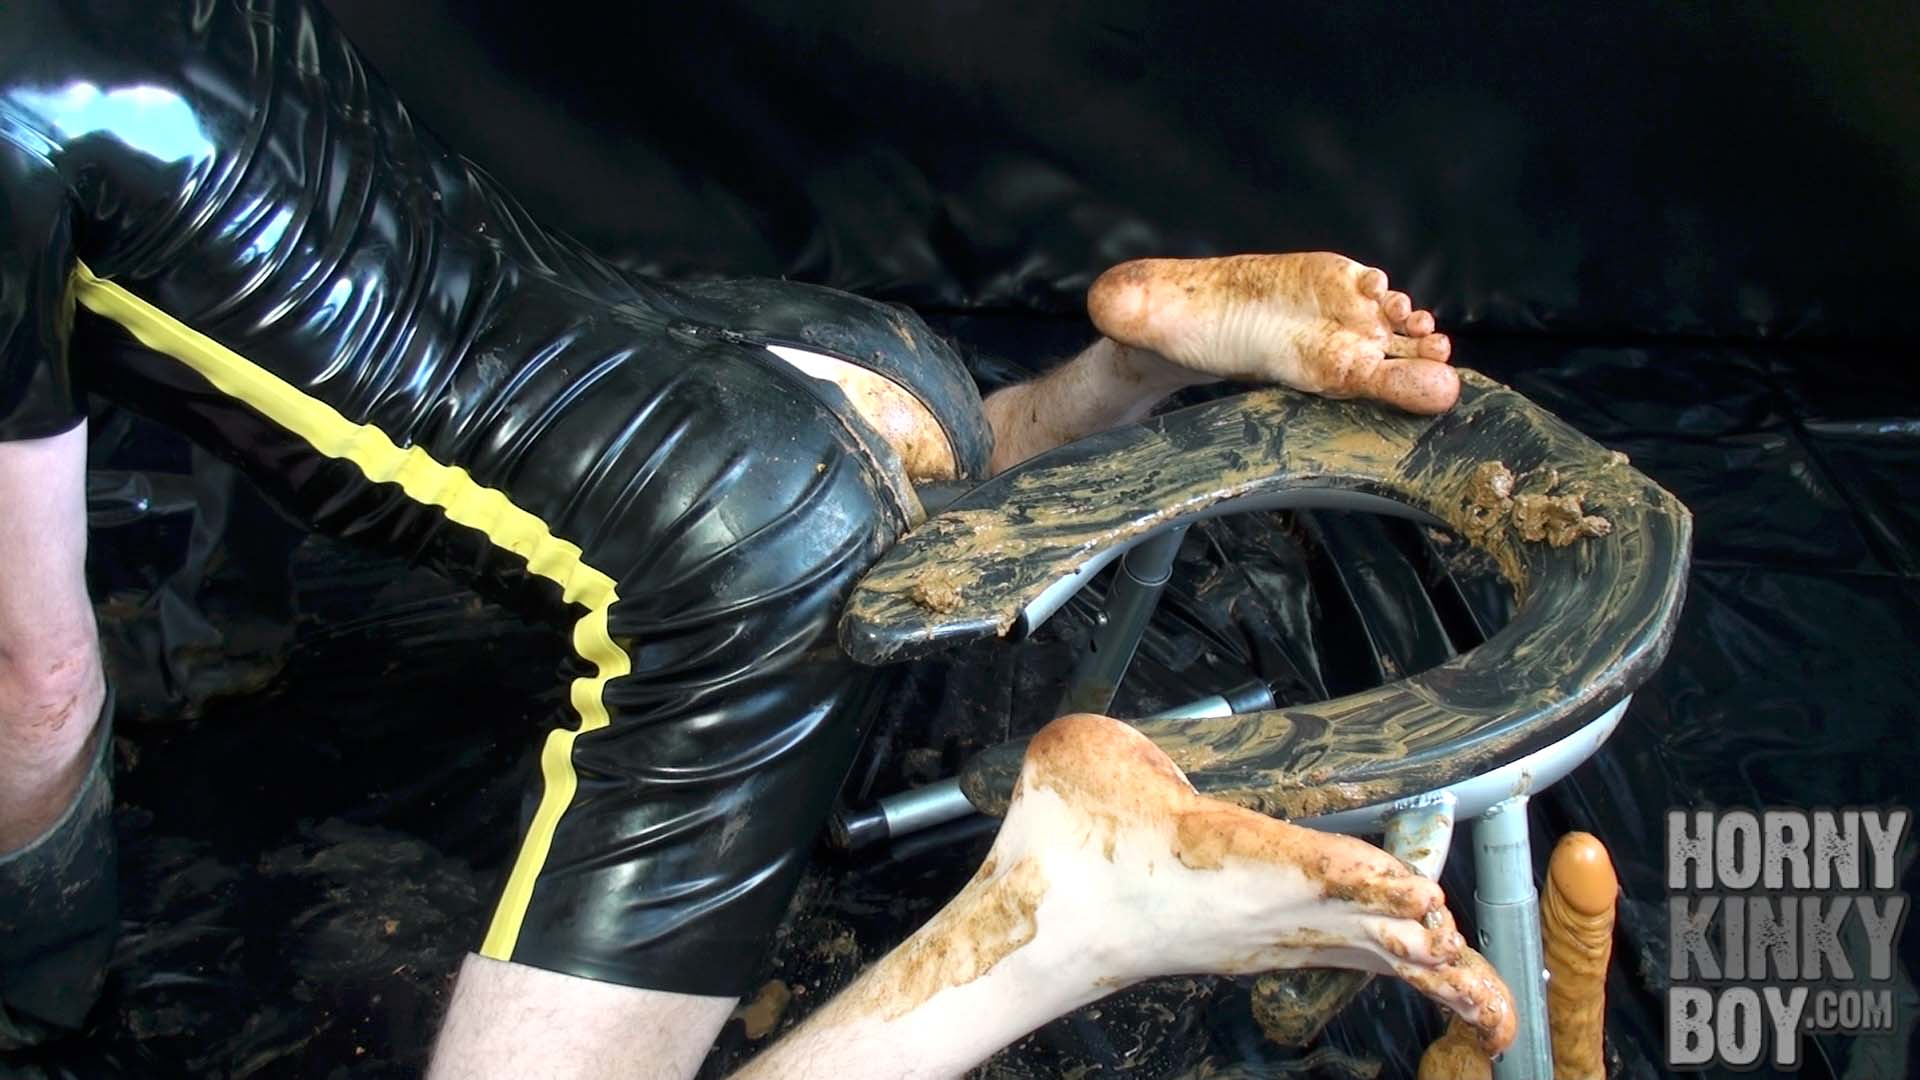 Erotic Foot And Scat Play With Rim Chair (Part I)